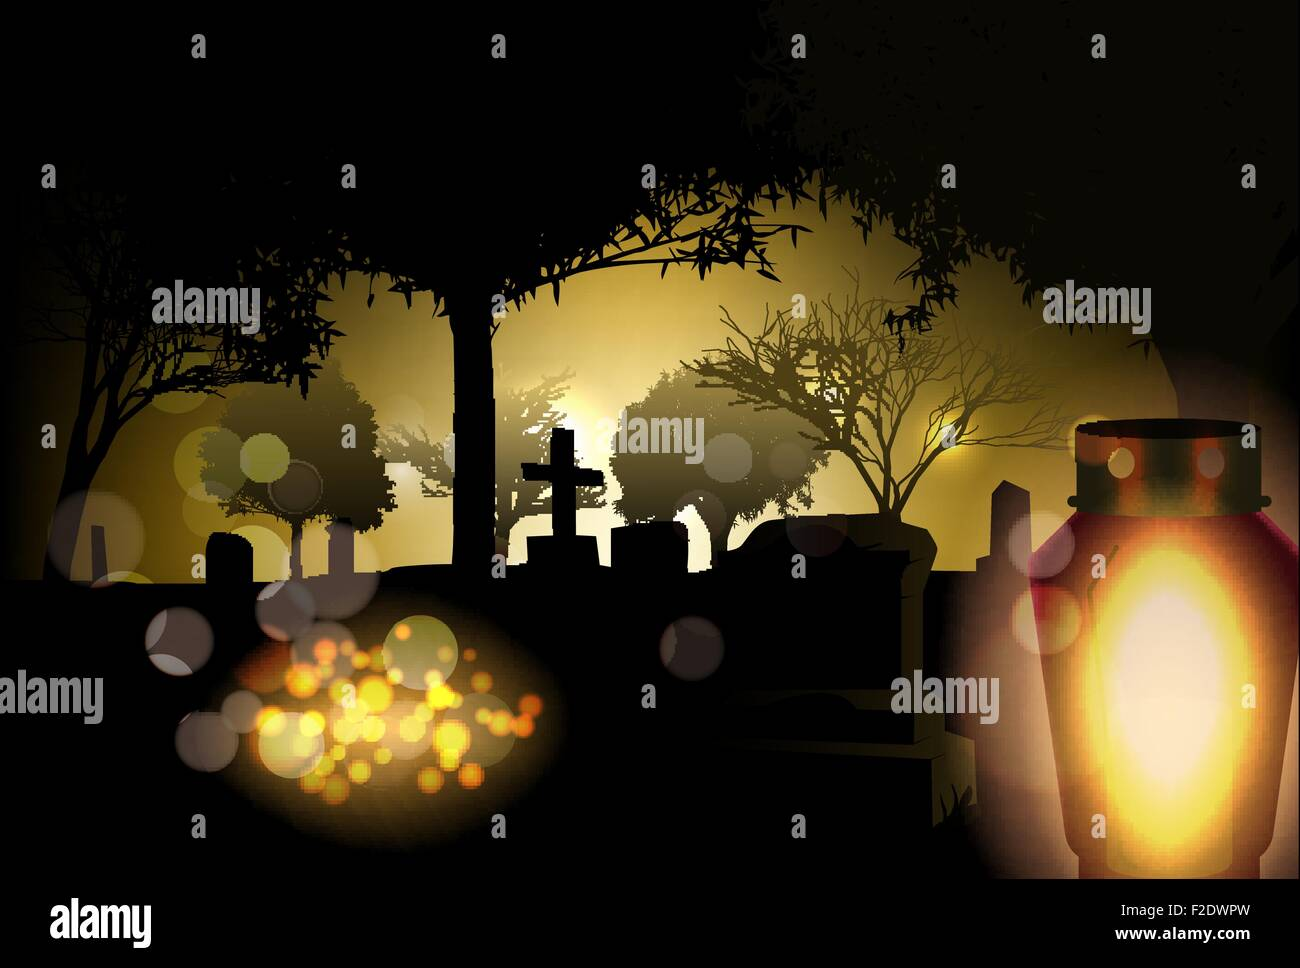 Vector Conceptual All Saints Day Illustration, Eps10 Vector, Gradient Mesh and Transparency Used - Stock Vector